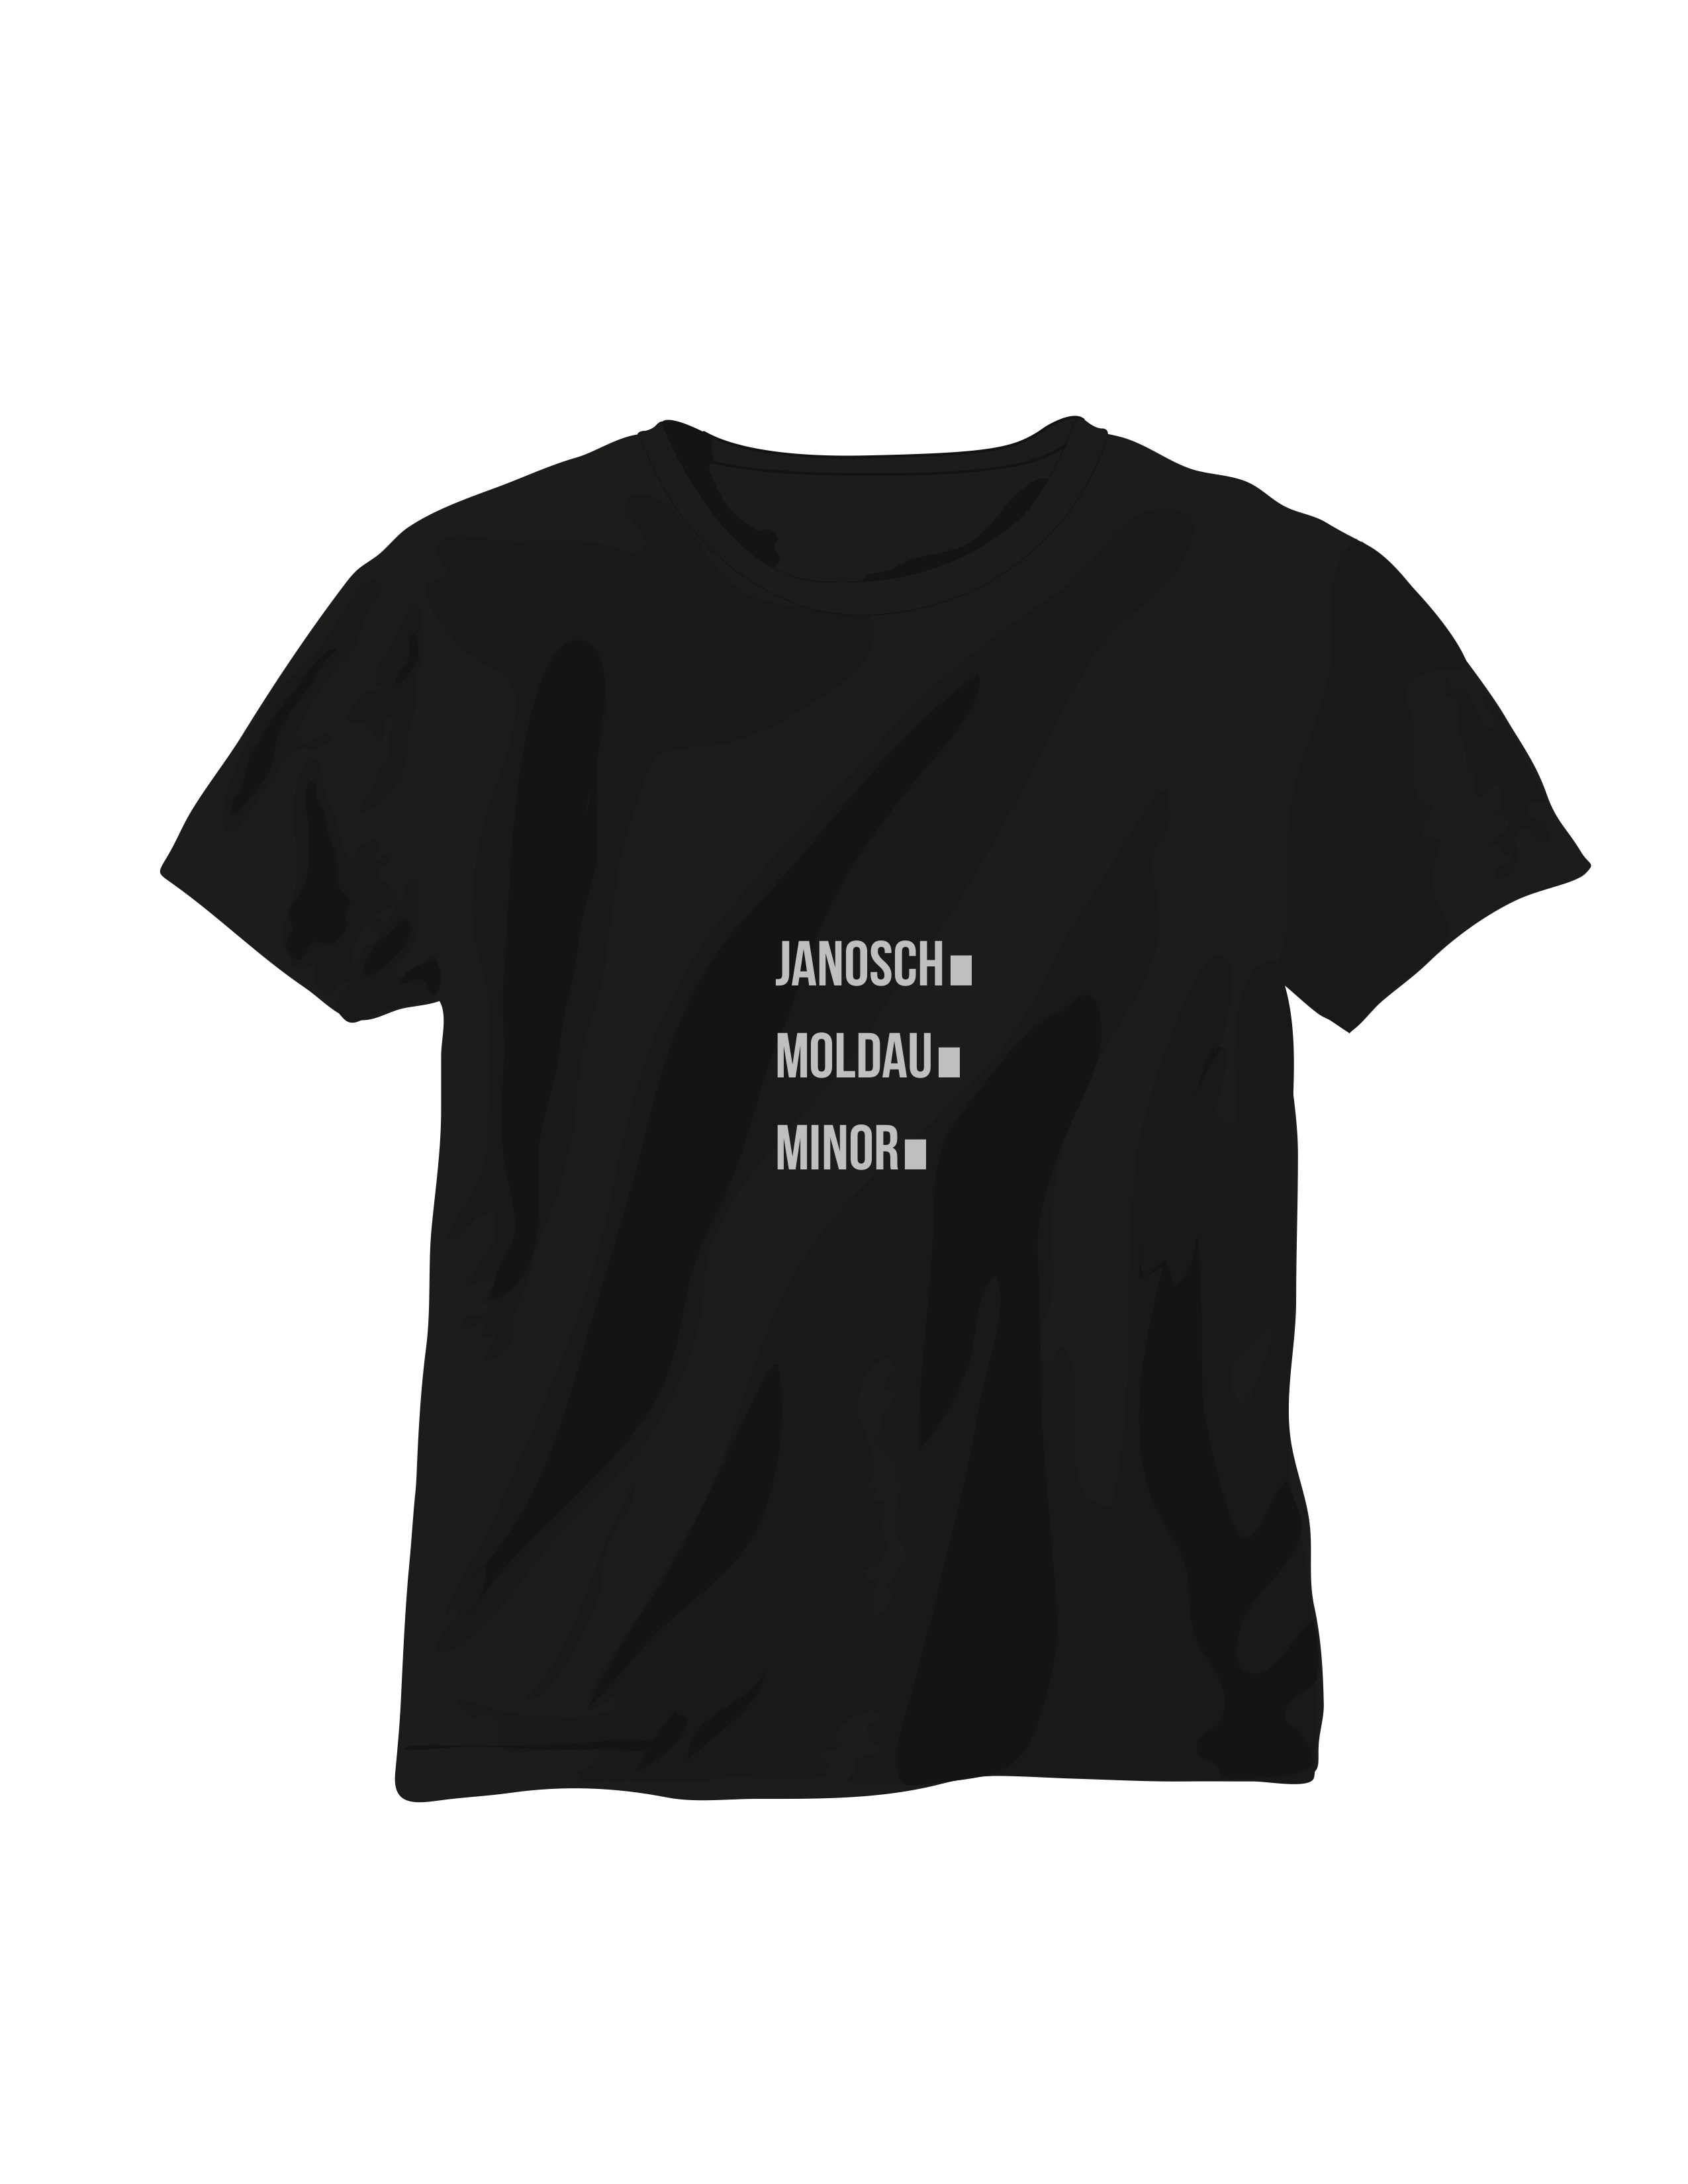 janosch moldau minor t-shirt